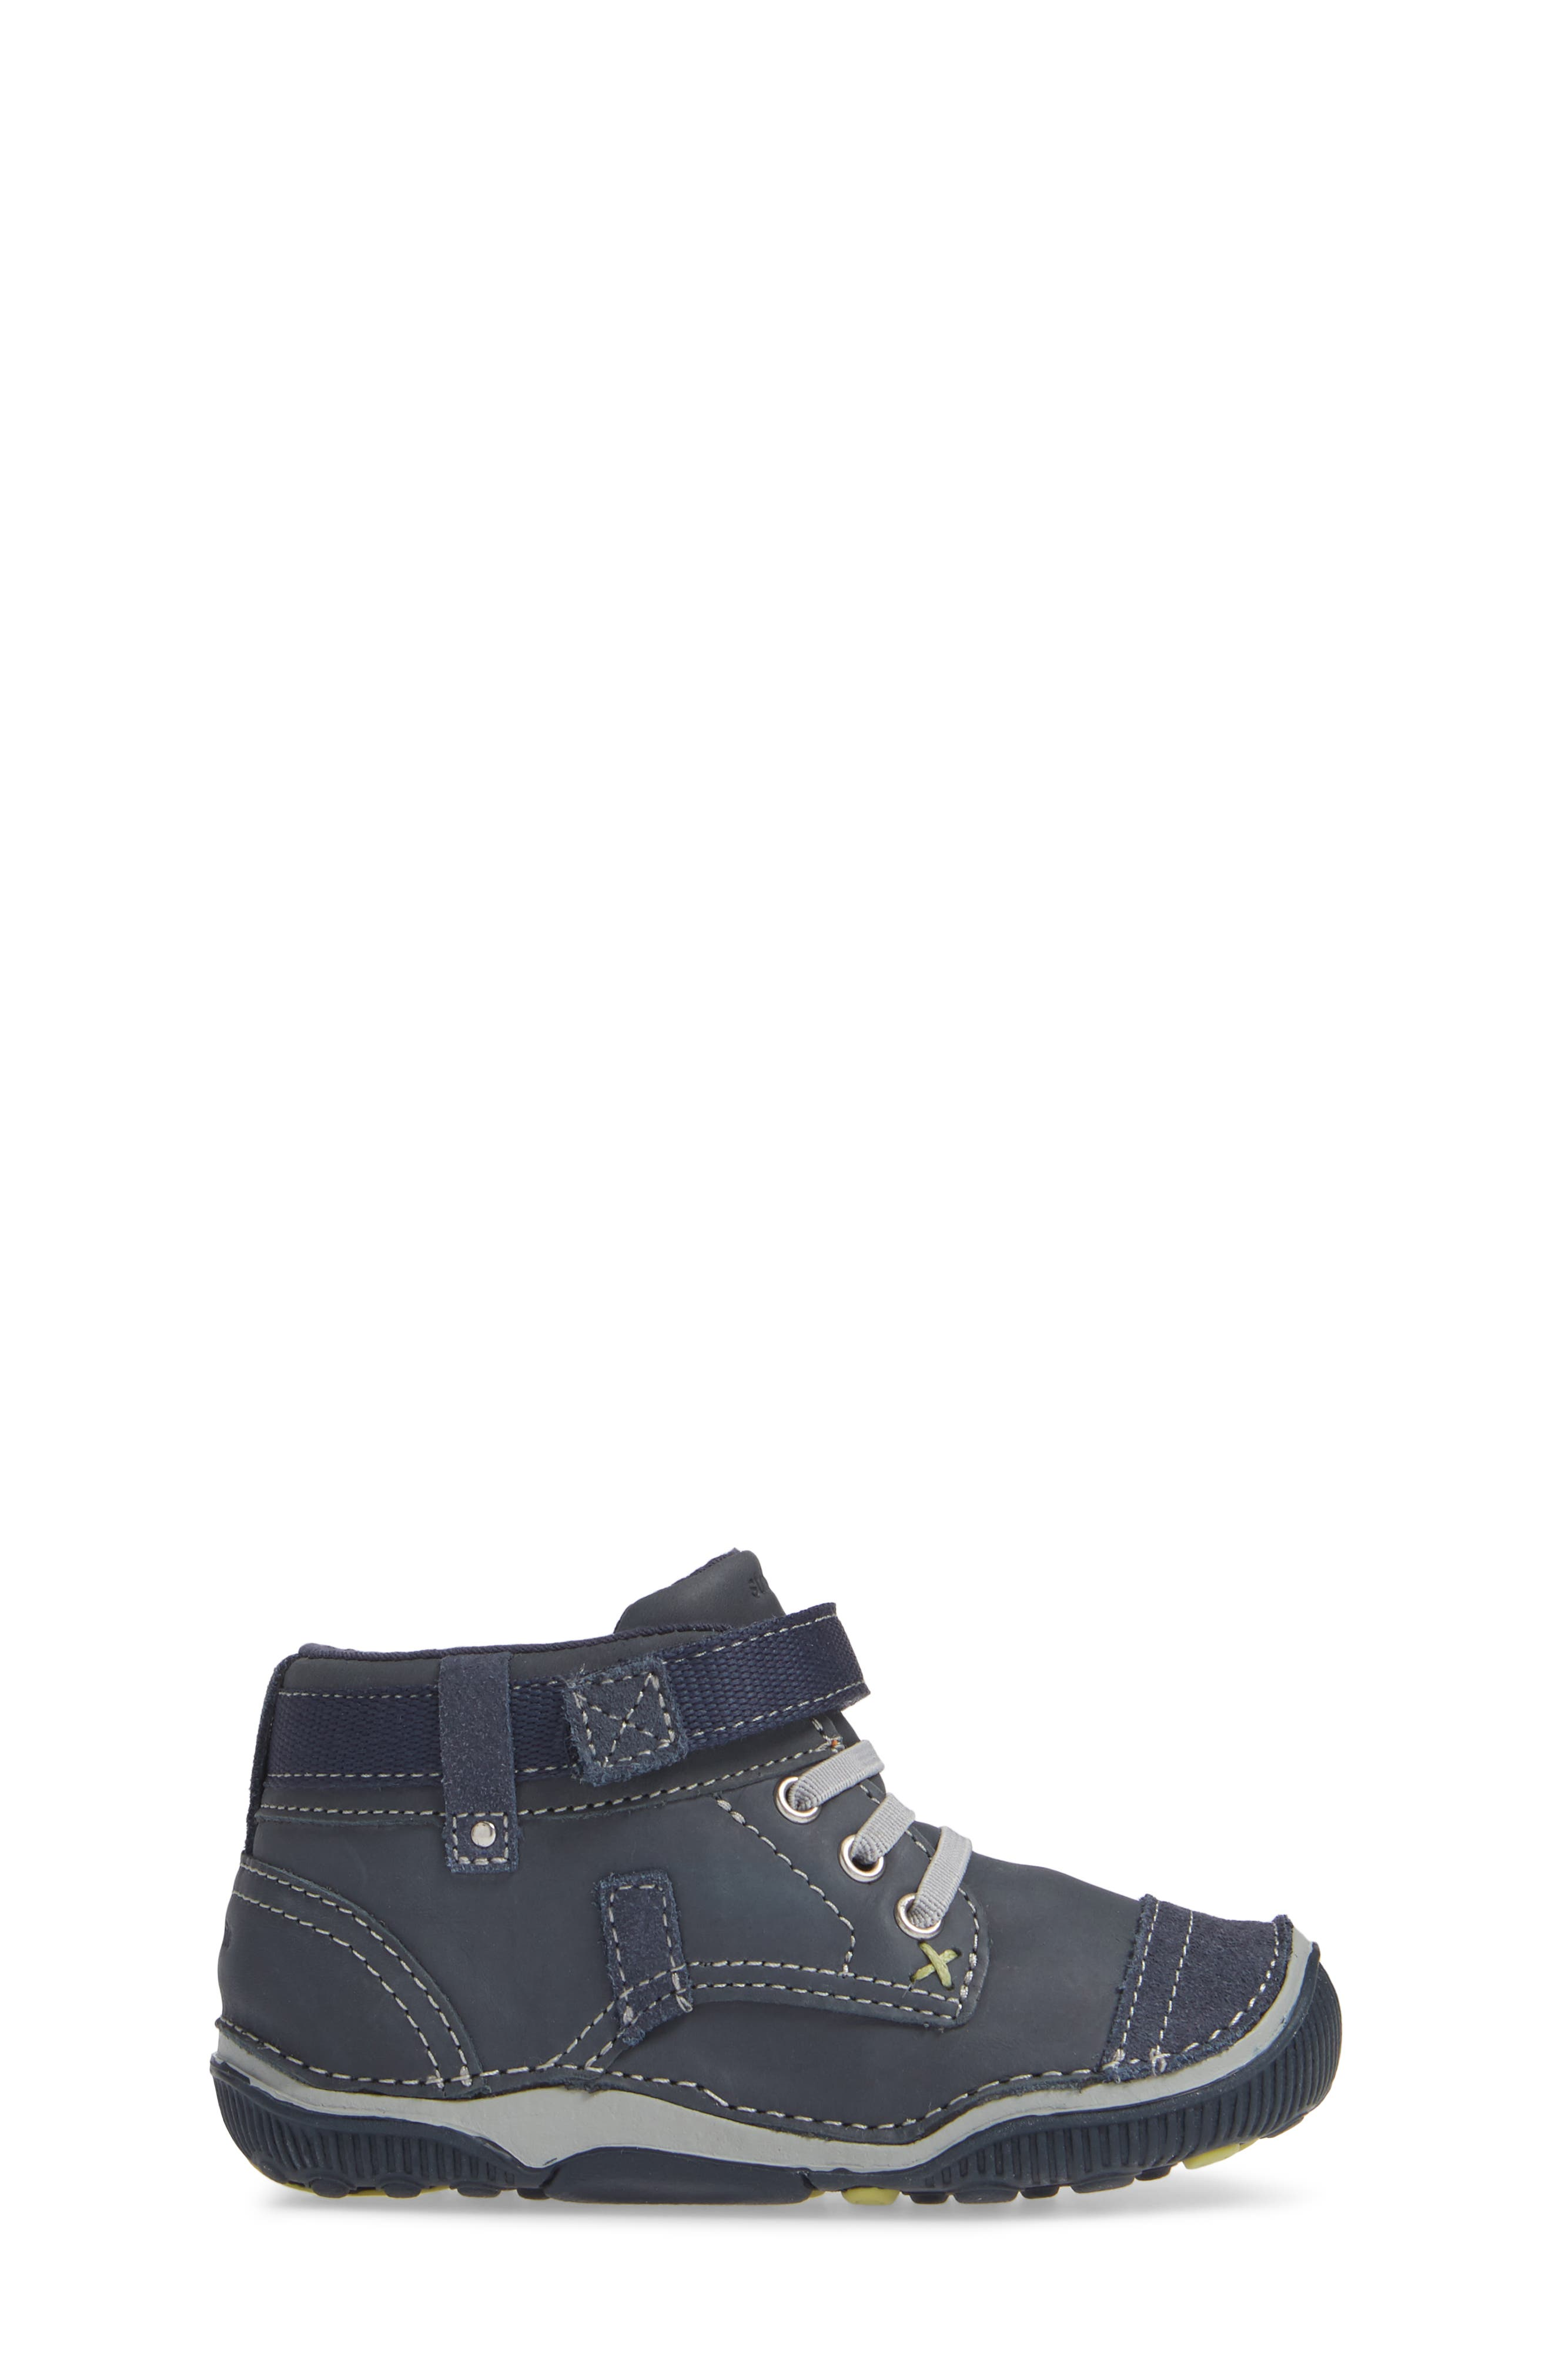 'Garrett' High Top Bootie Sneaker,                             Alternate thumbnail 3, color,                             NAVY